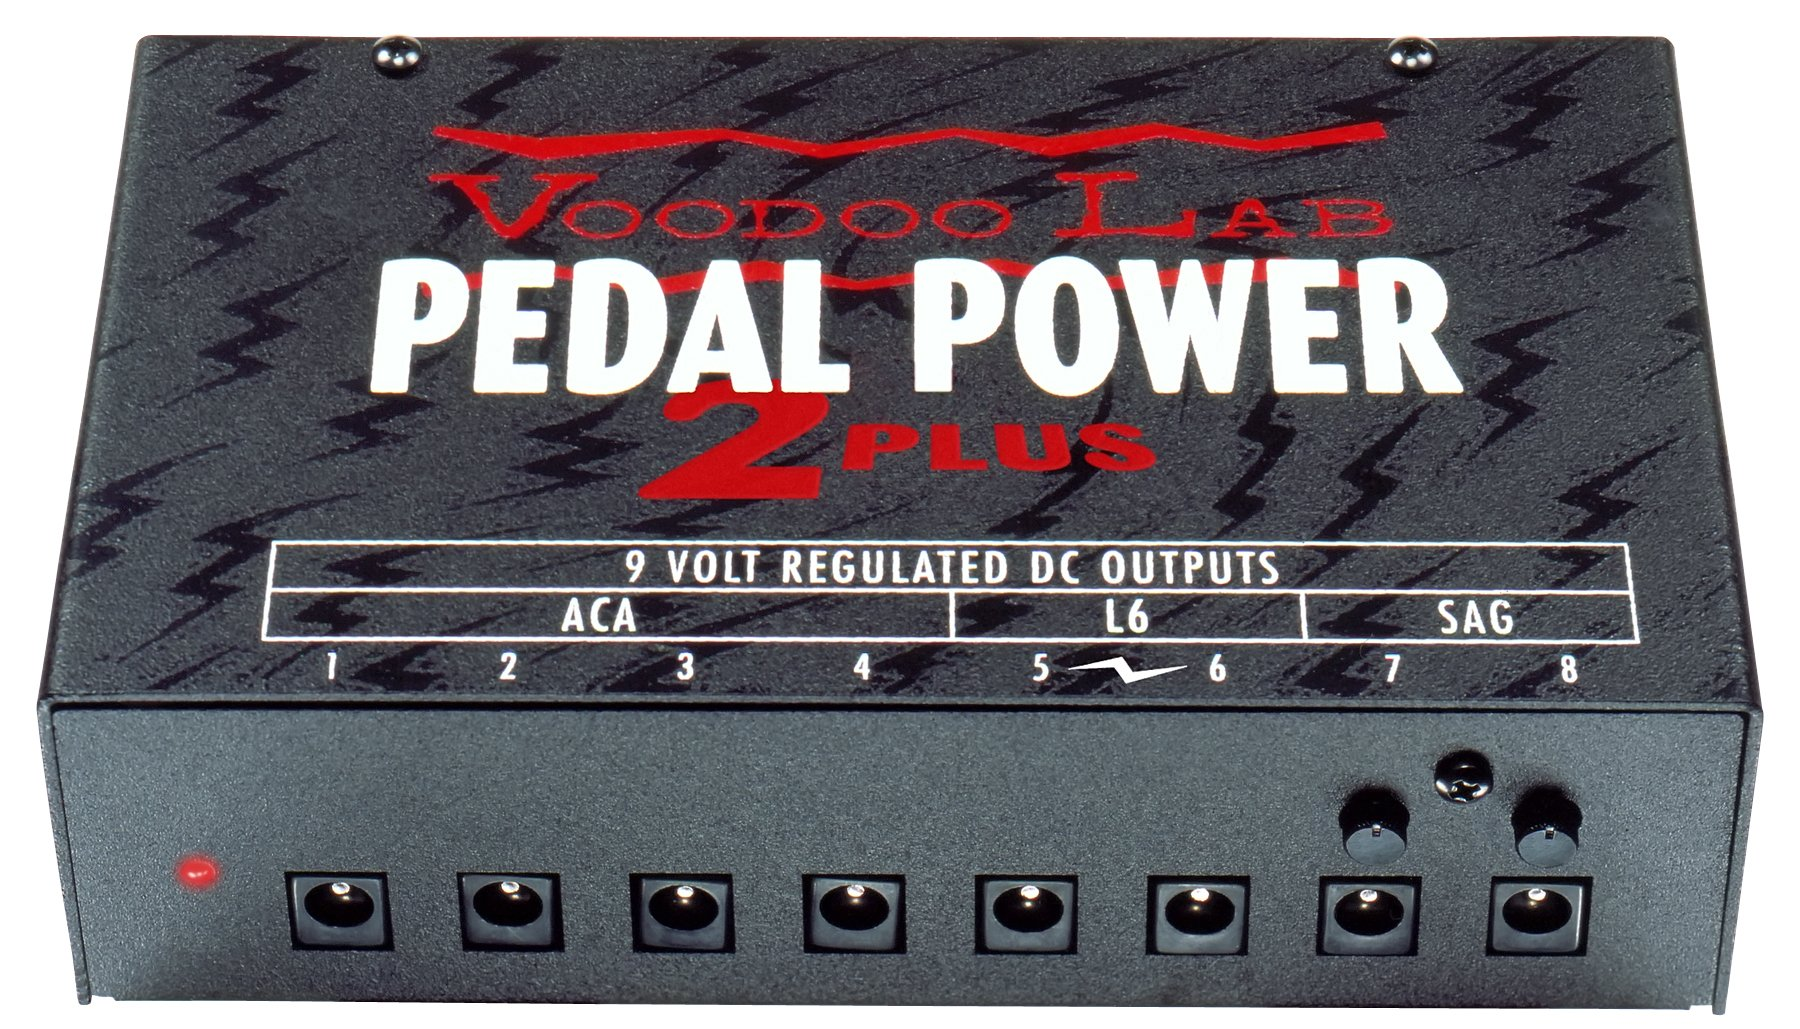 Alimentador Voodoo Lab Pedal Power 2